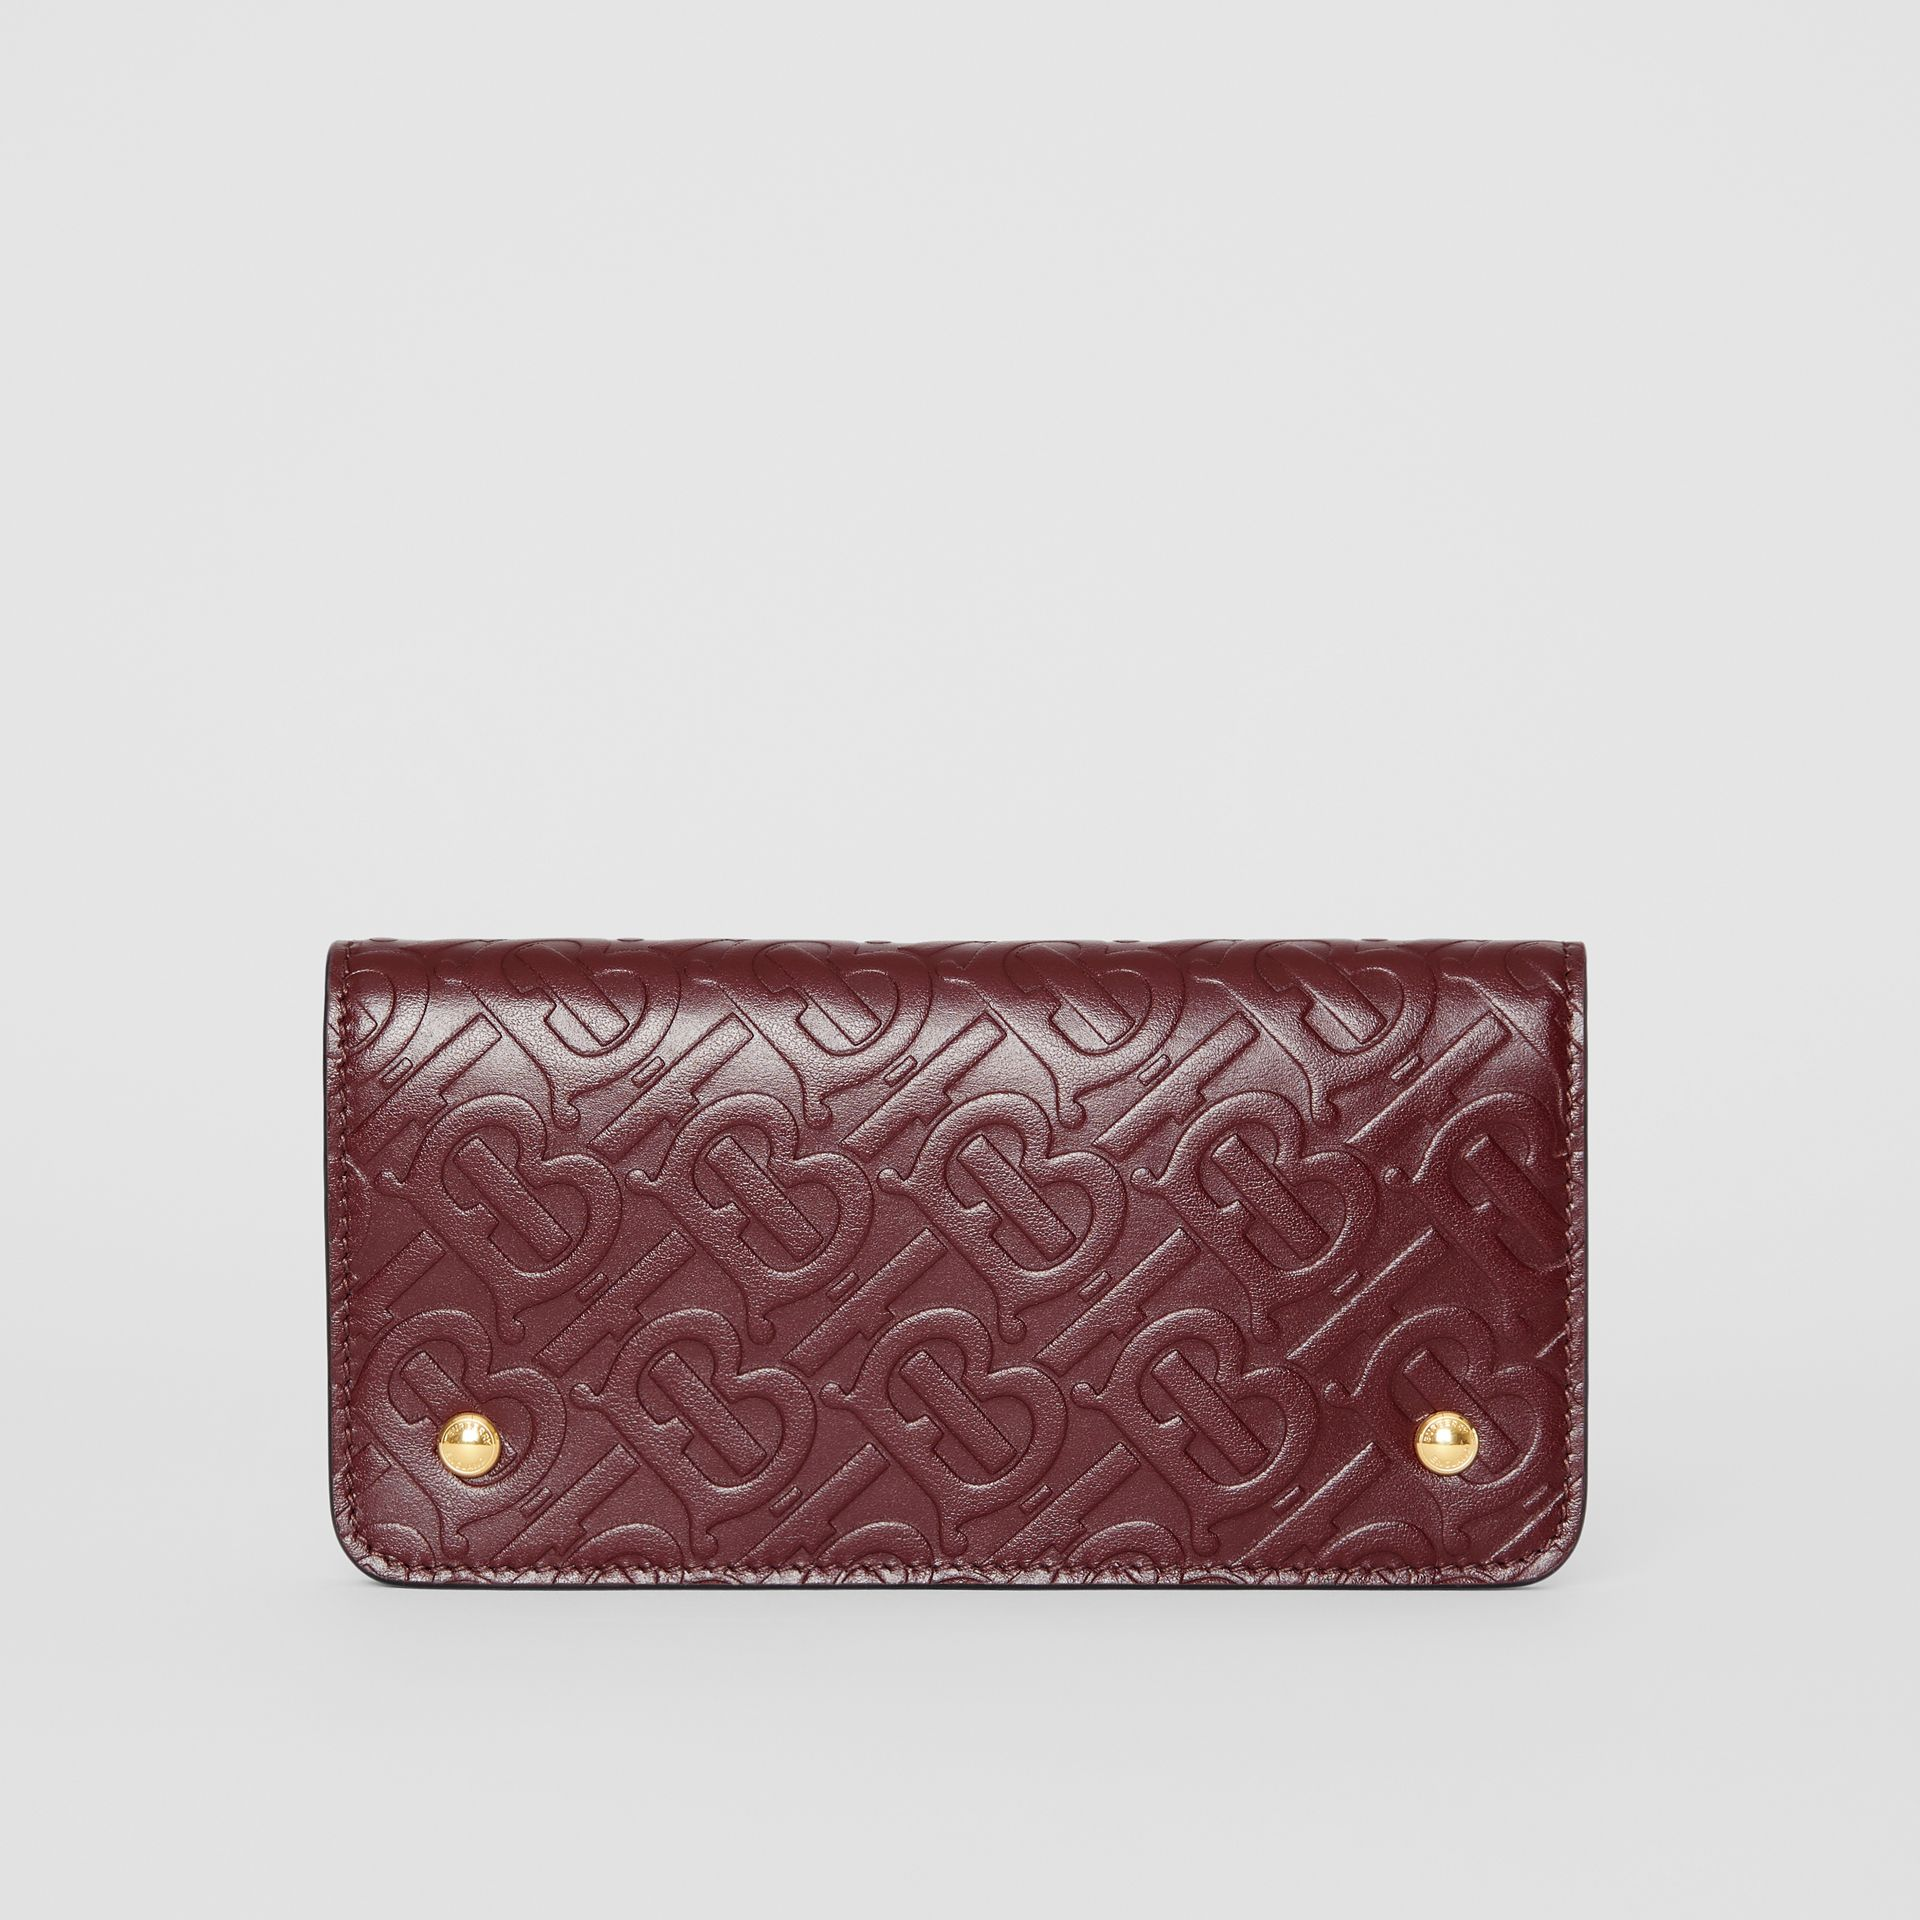 Monogram Leather Phone Wallet in Oxblood - Women | Burberry - gallery image 0